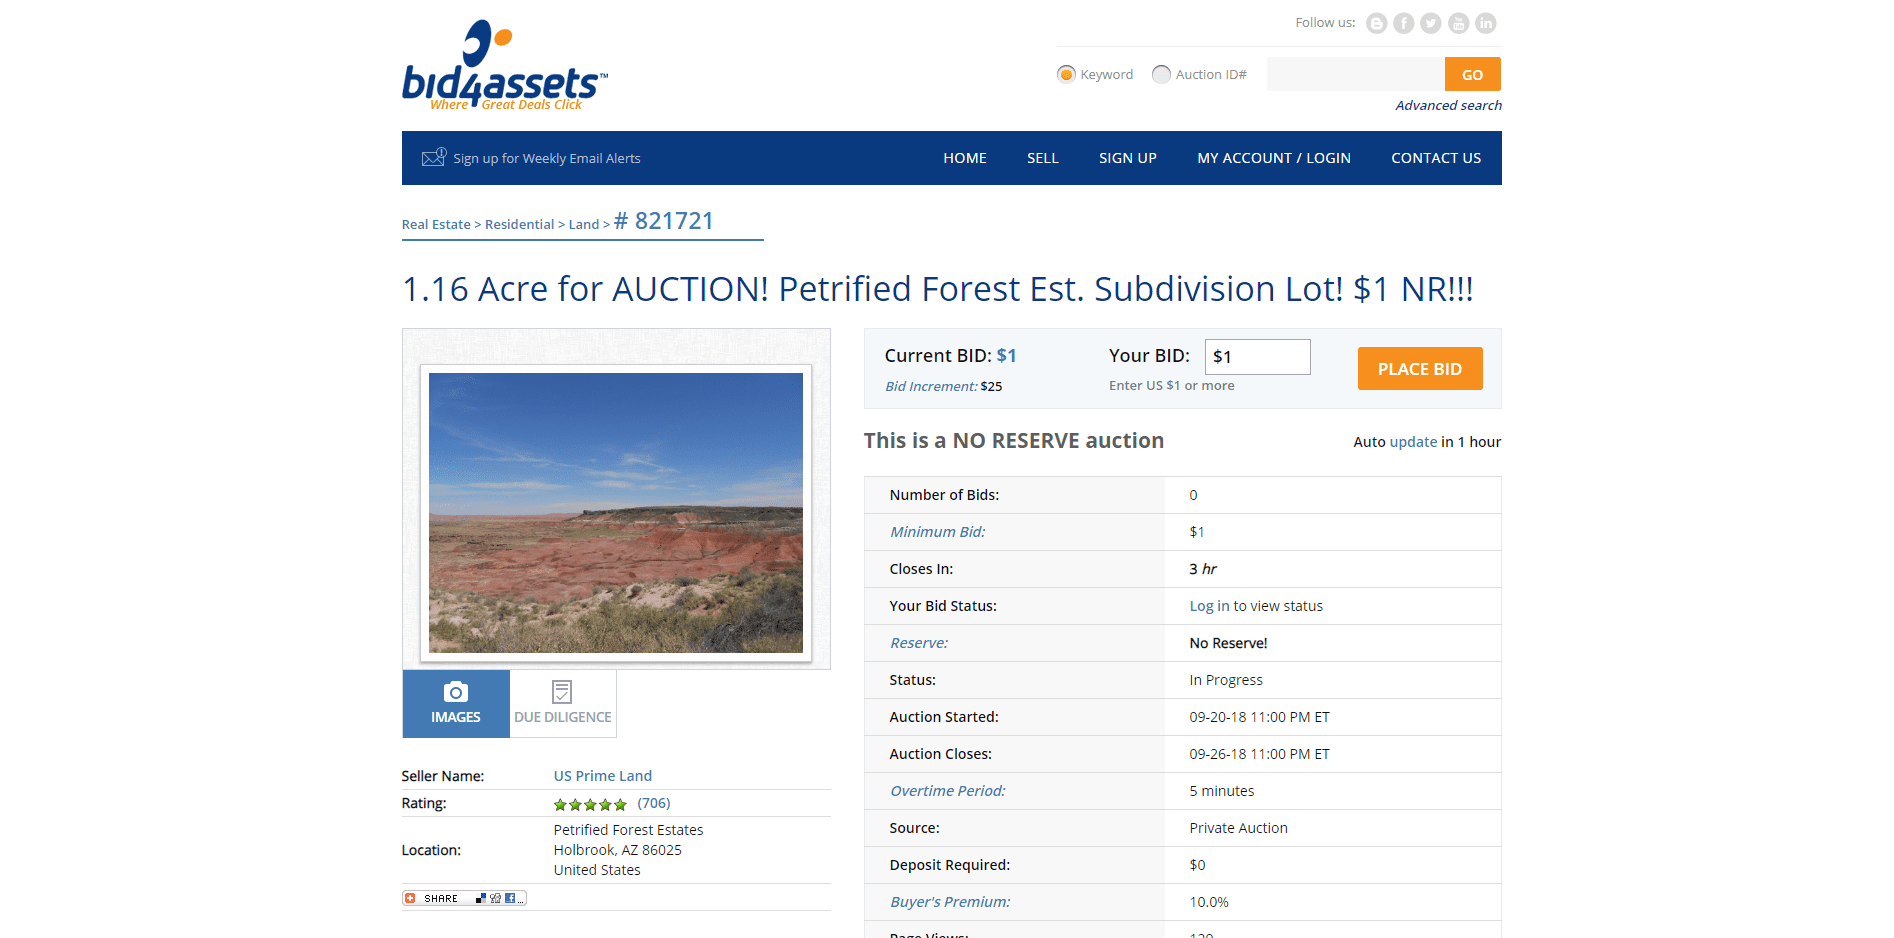 An absolute auction starting at $1 on the bid4assets.com website.